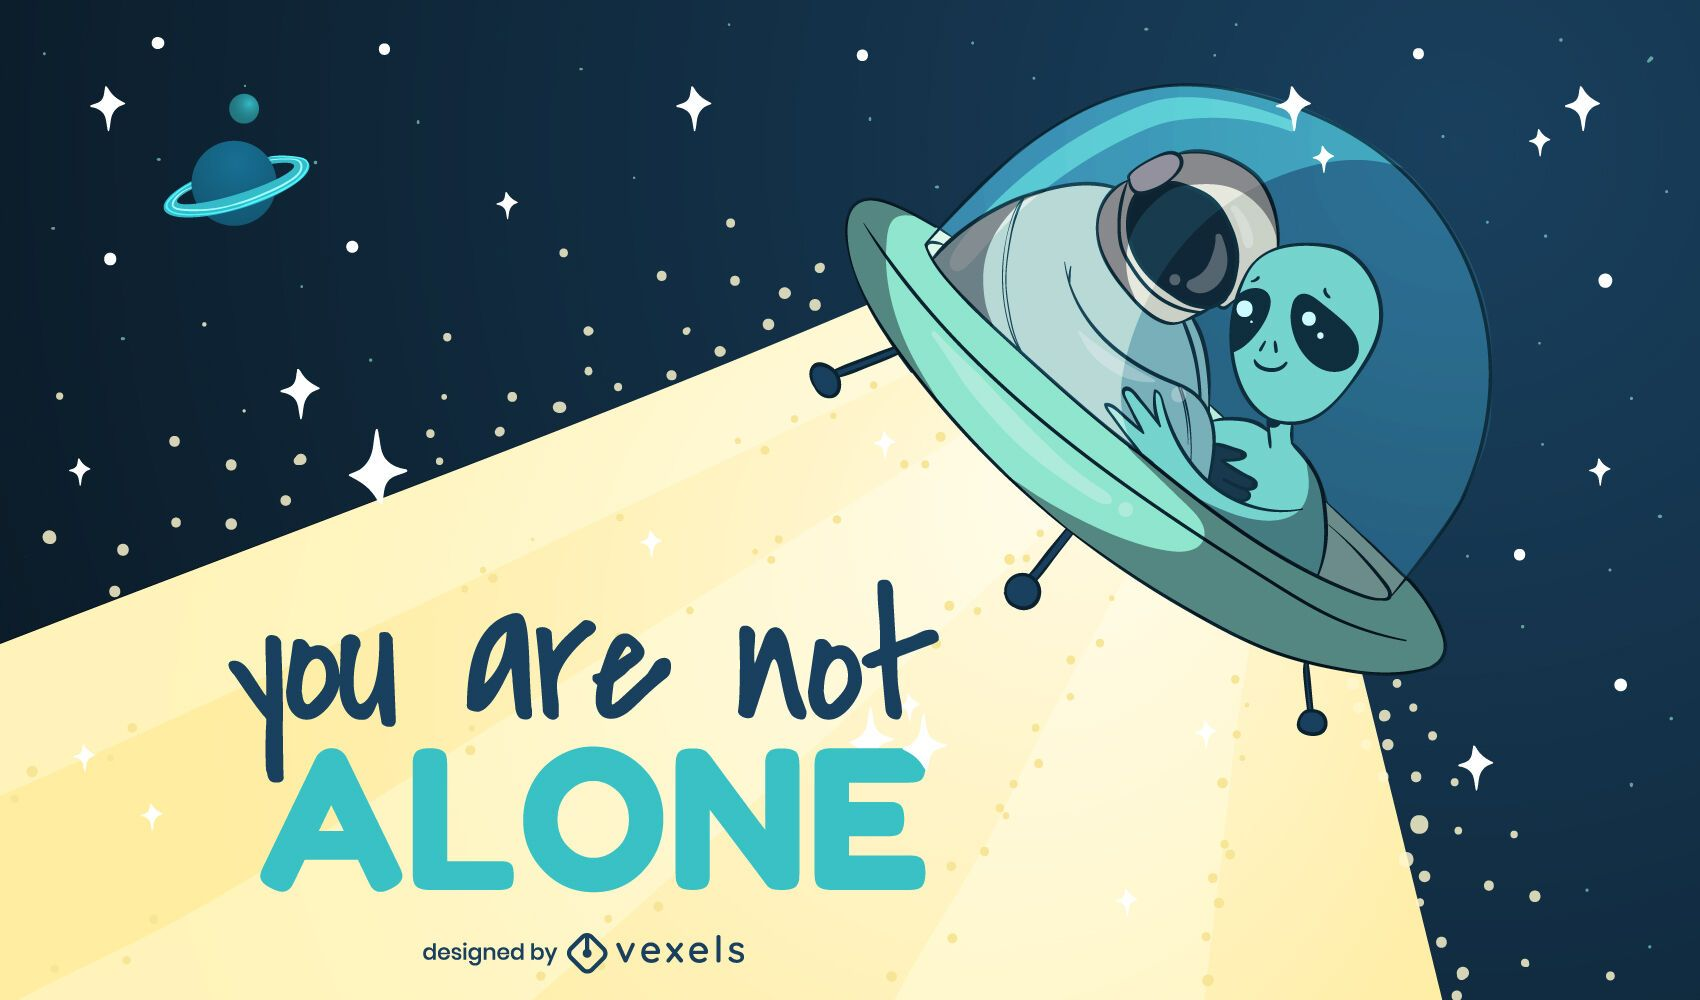 You are not alone space illustration